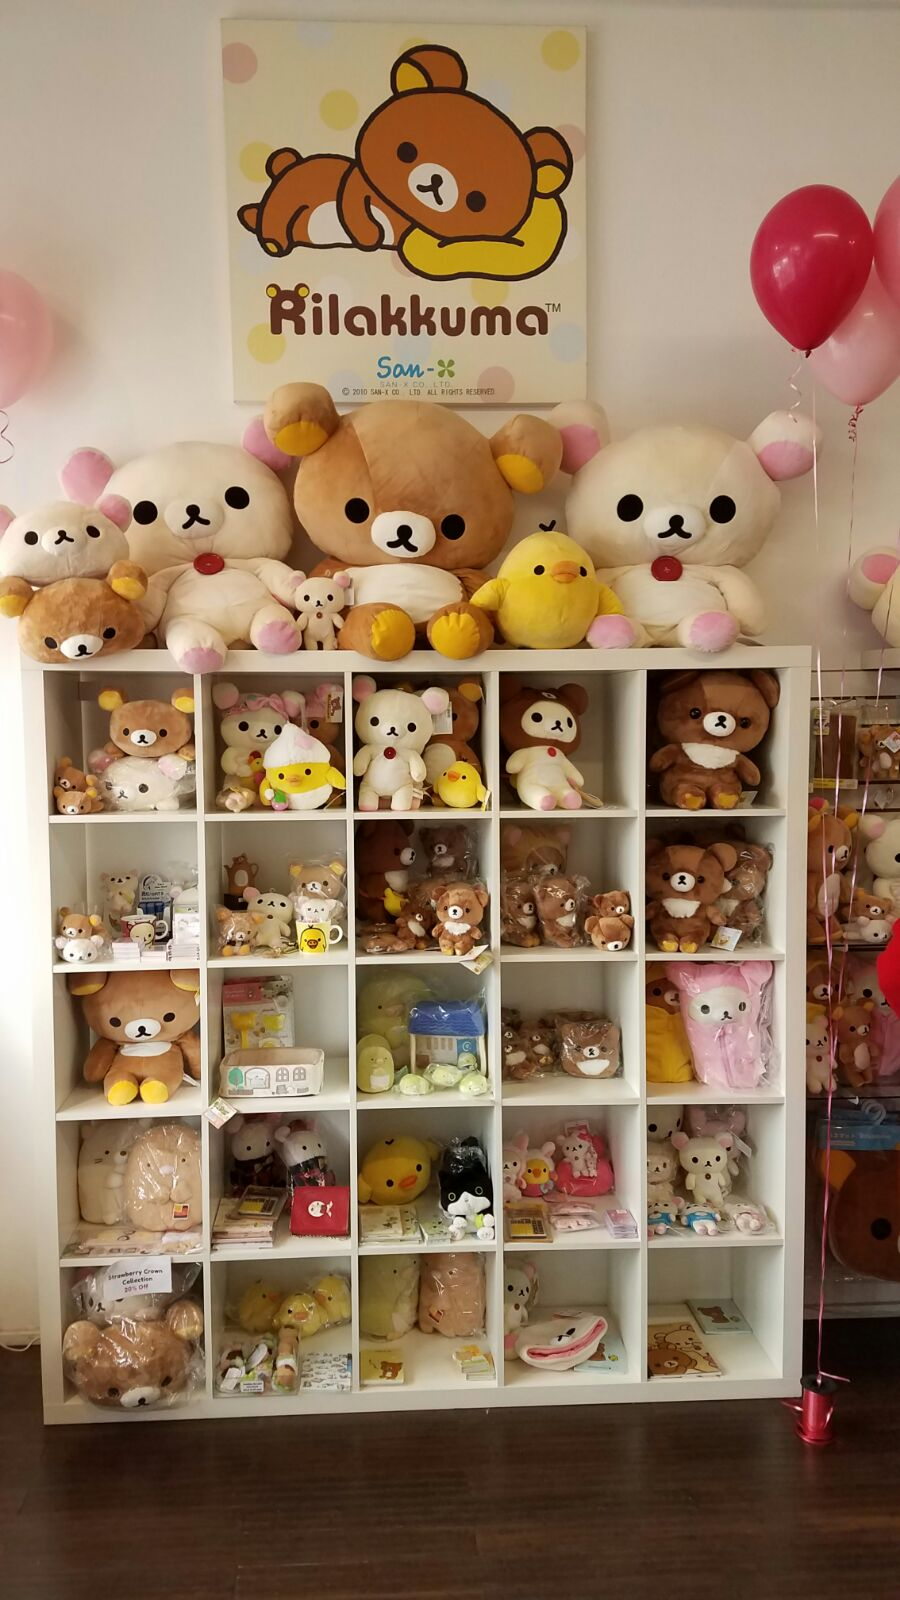 Shelf of Rilakkuma plush